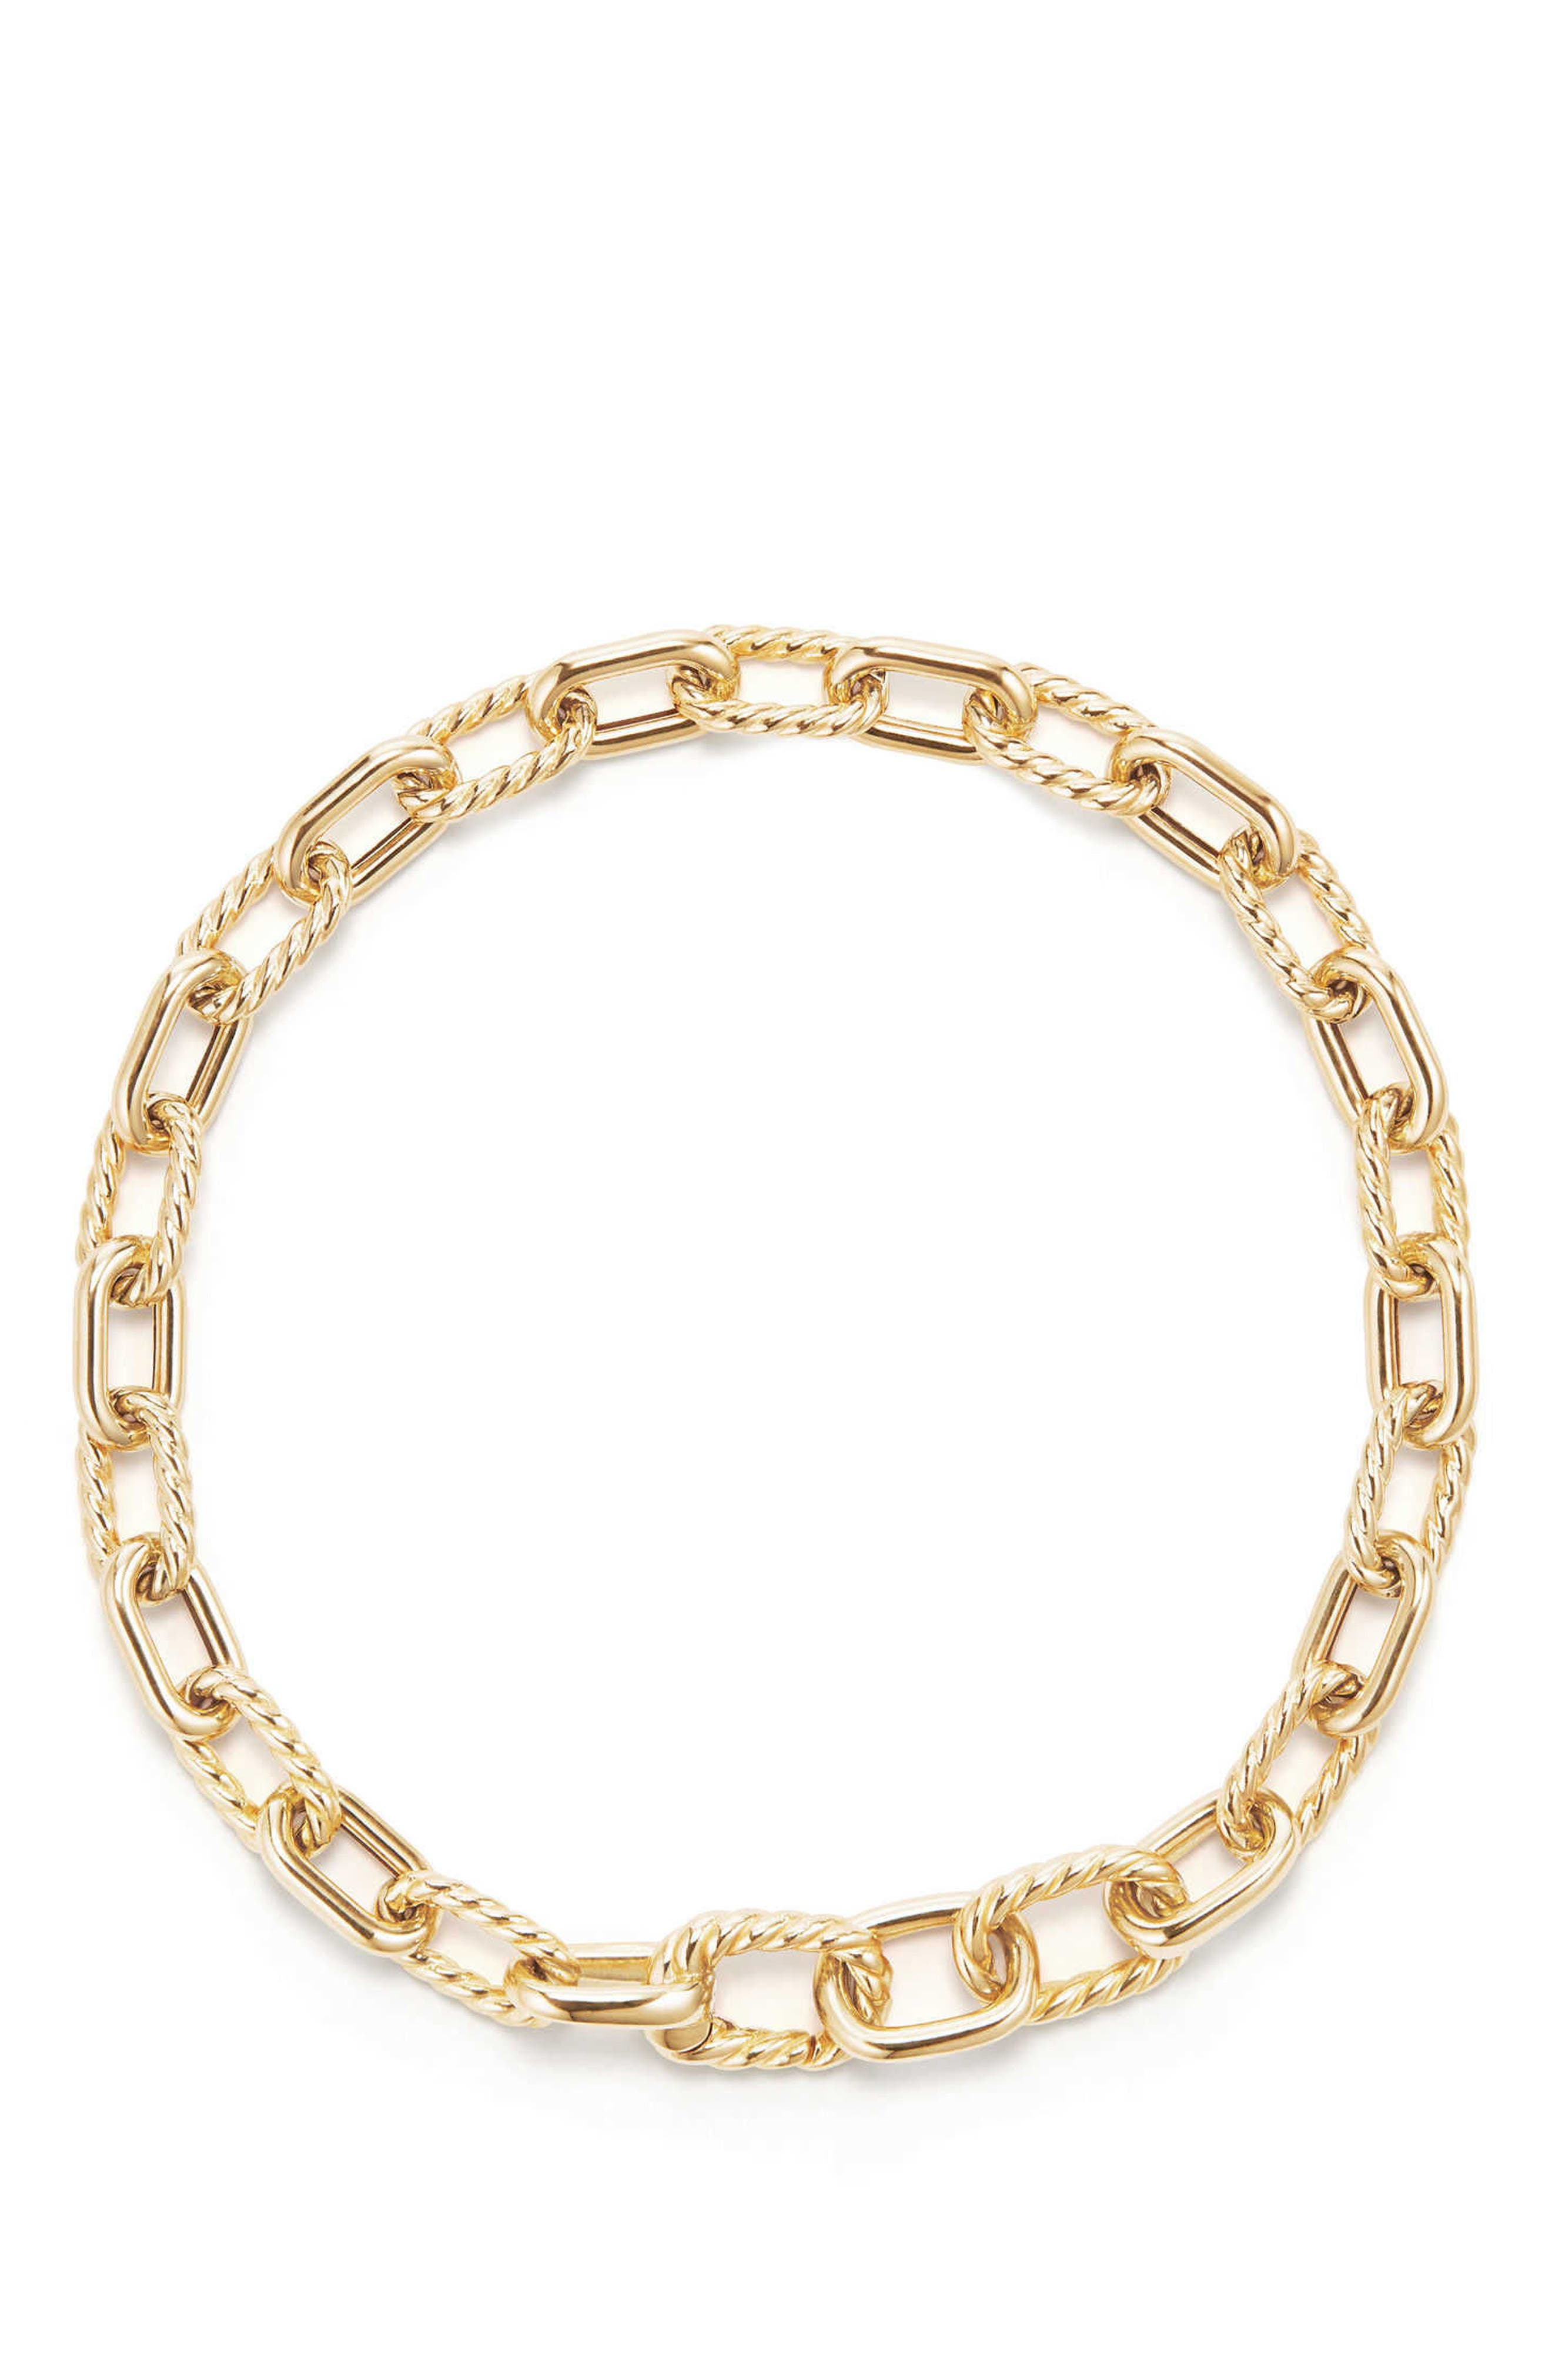 DY Madison Bold Chain Bracelet in 18K Gold,                             Main thumbnail 1, color,                             Gold